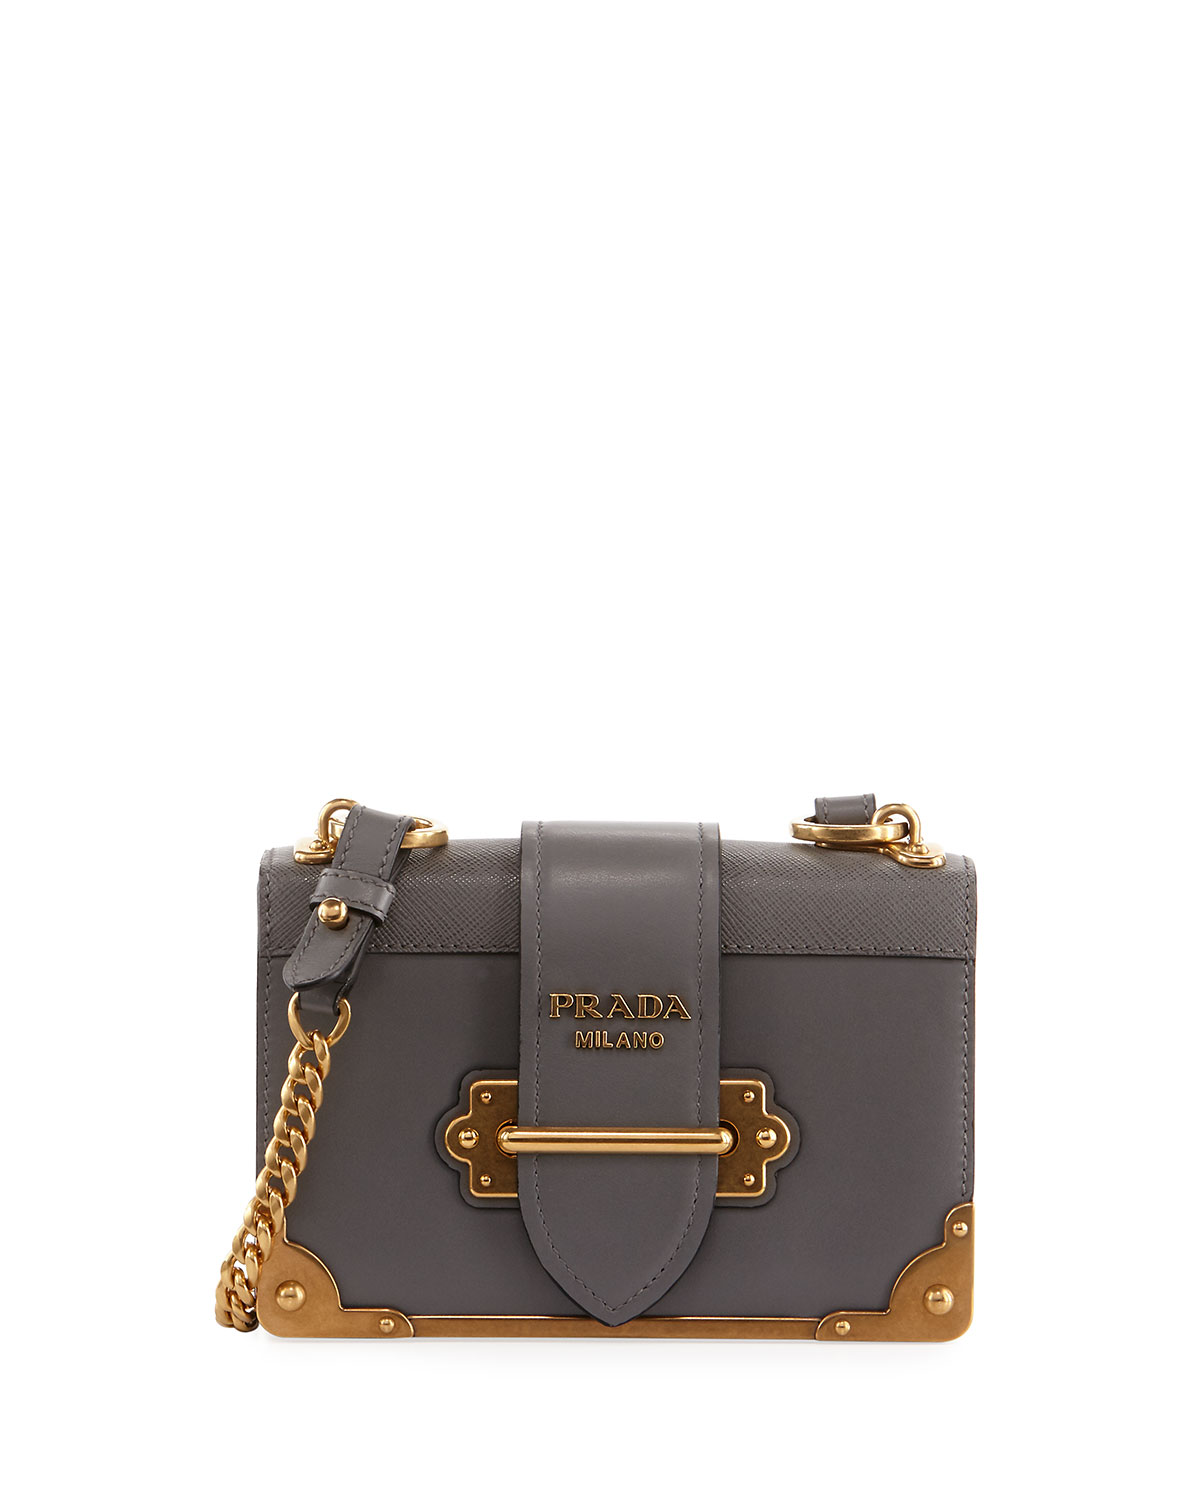 052613eaca13dd Prada Cahier Small Leather Trunk Crossbody Bag | Neiman Marcus